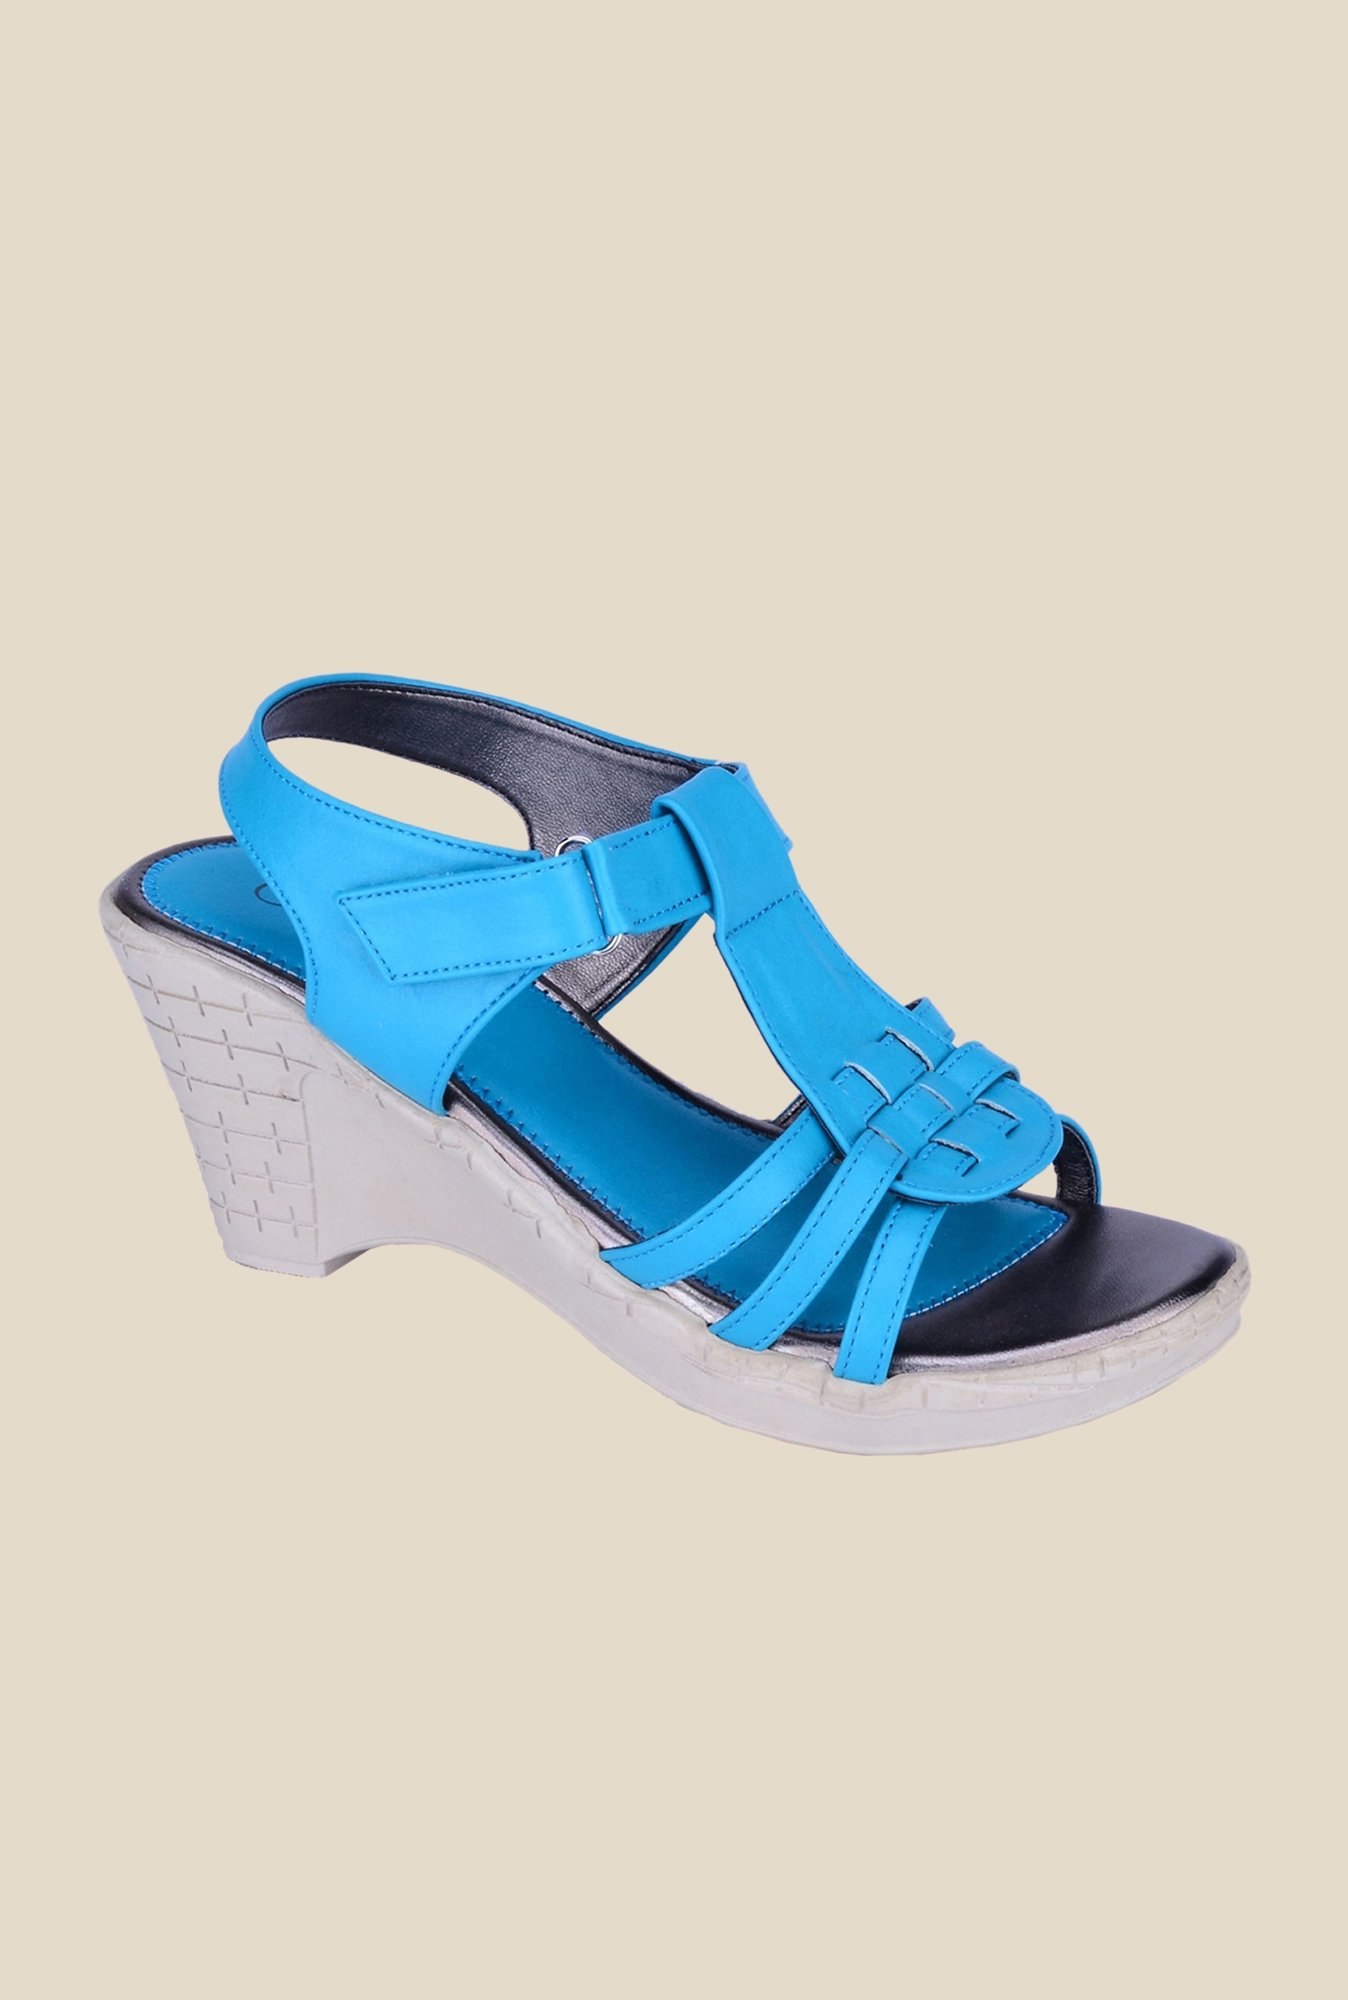 Khadim's Cleo Blue Back Strap Wedges